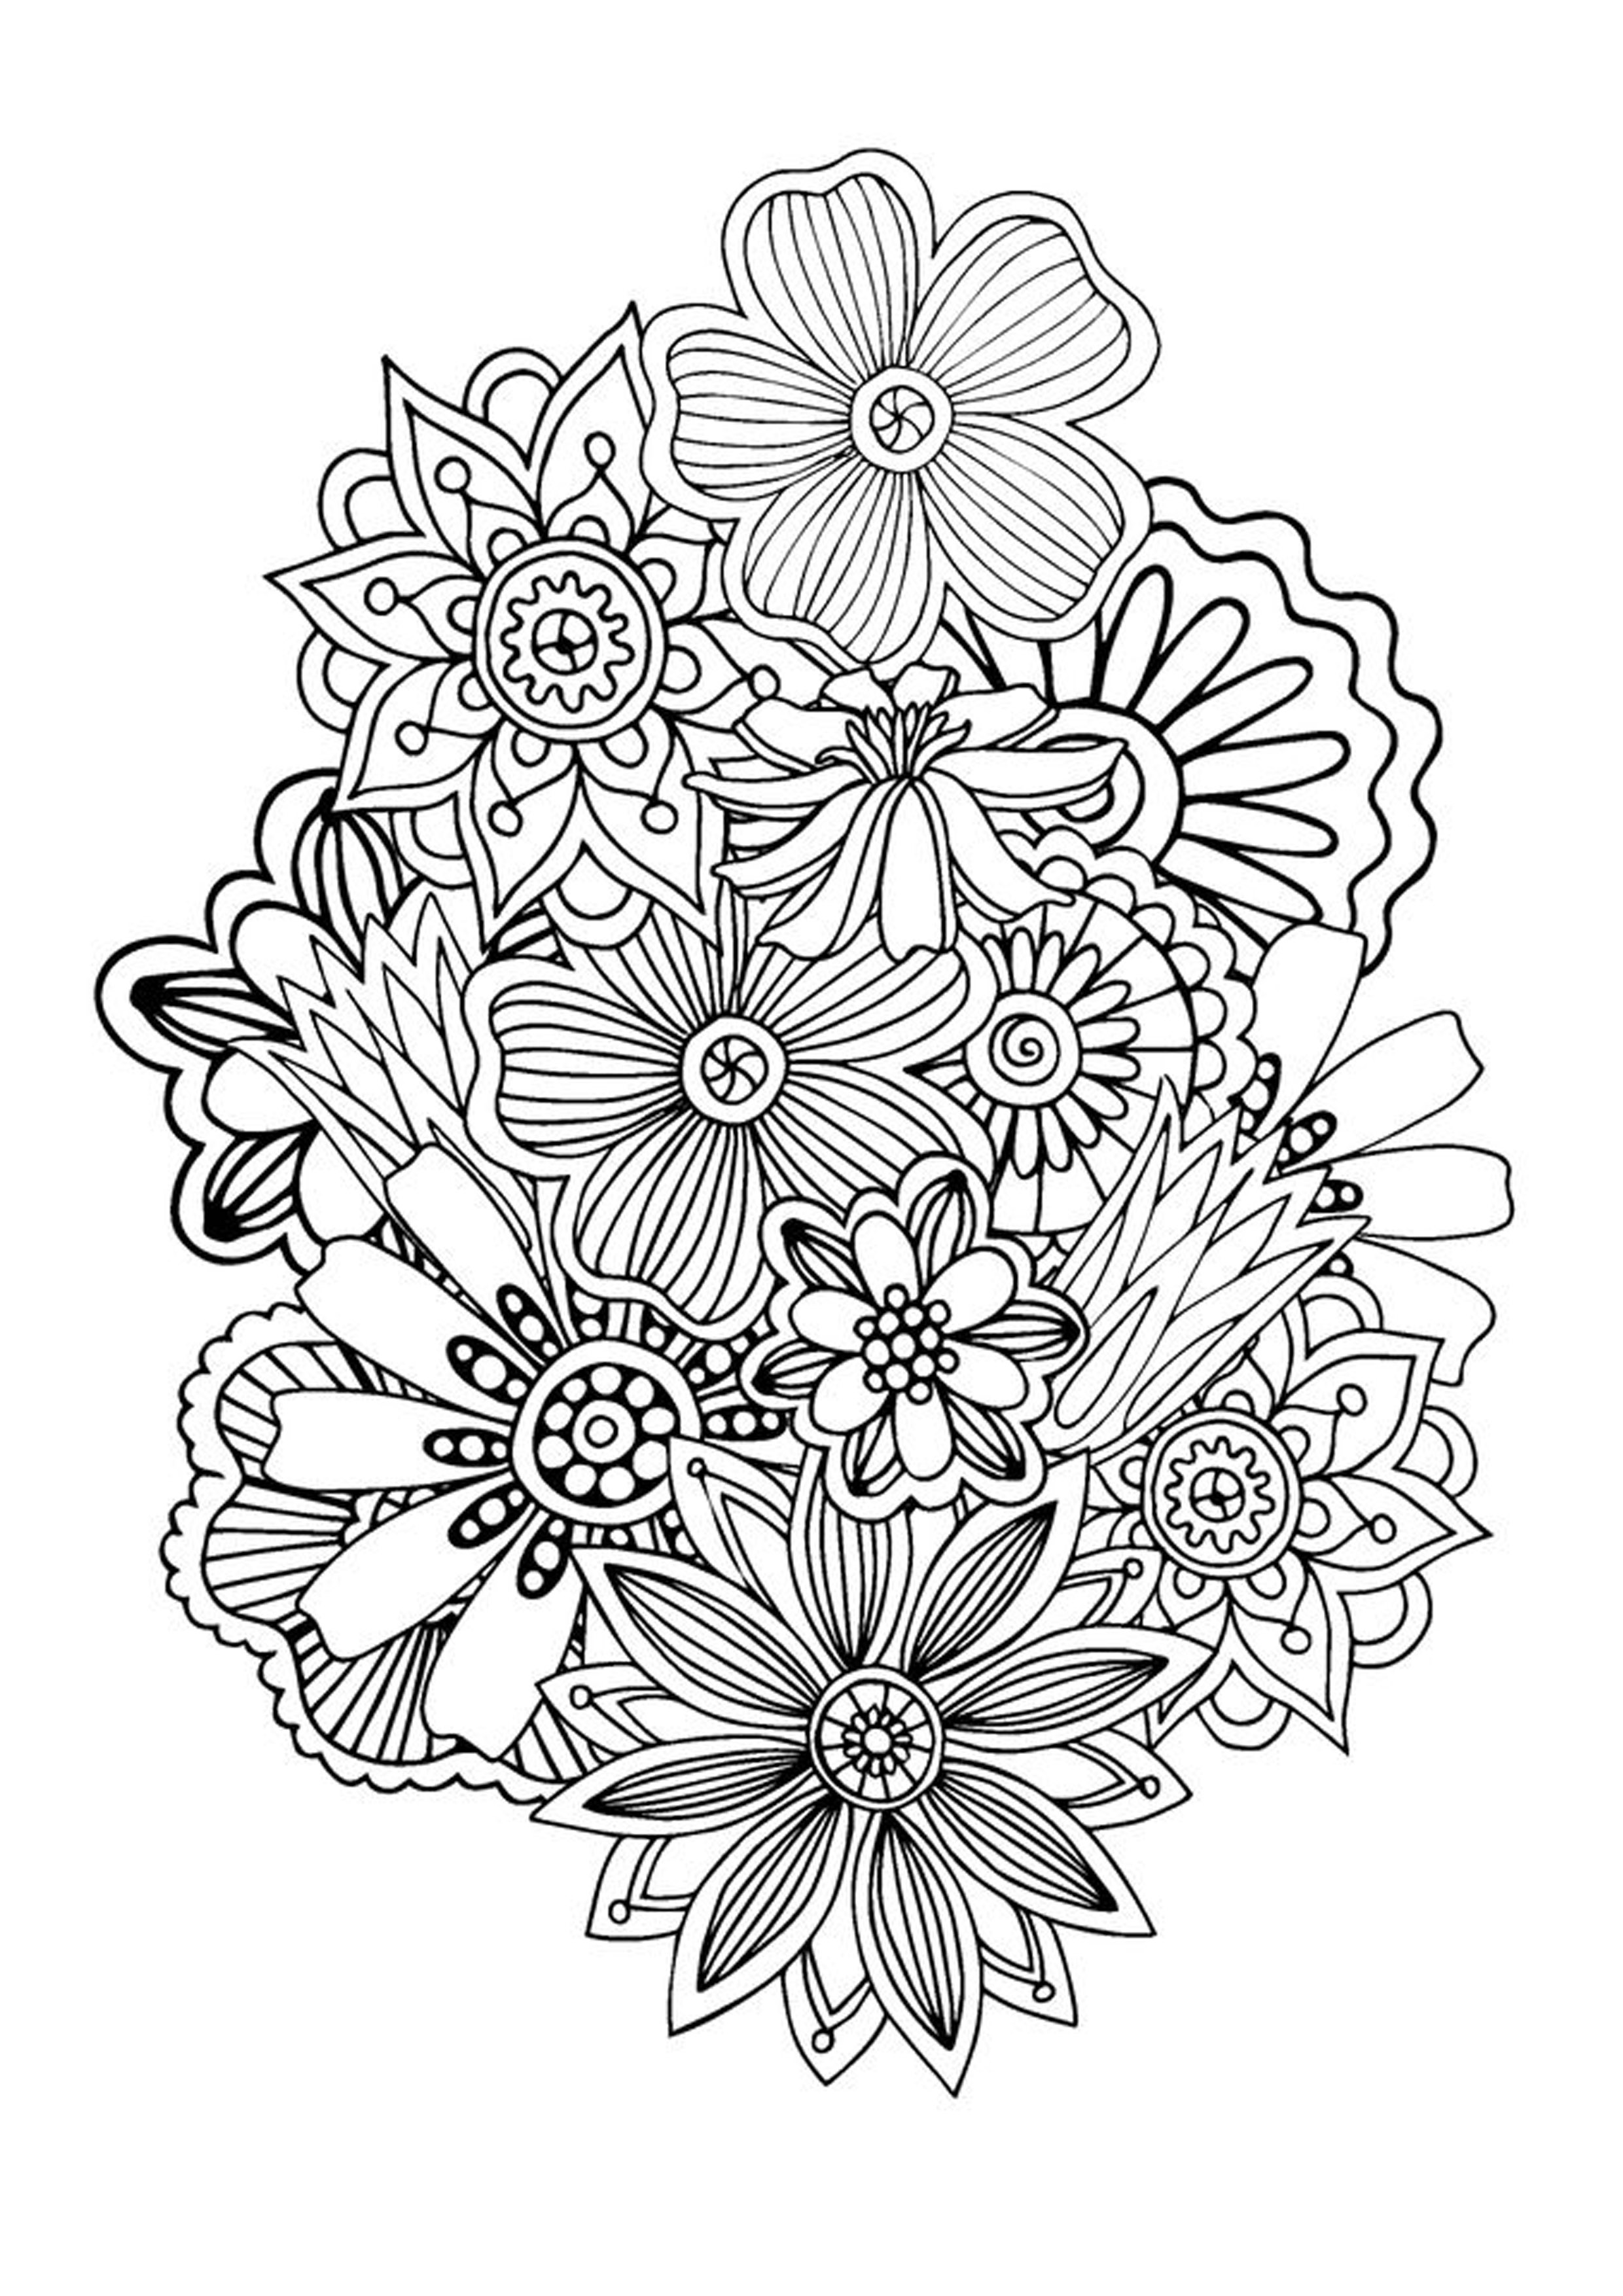 Zen And Anti Stress Coloring Pages For Adults Coloring Coloring Pages Zen